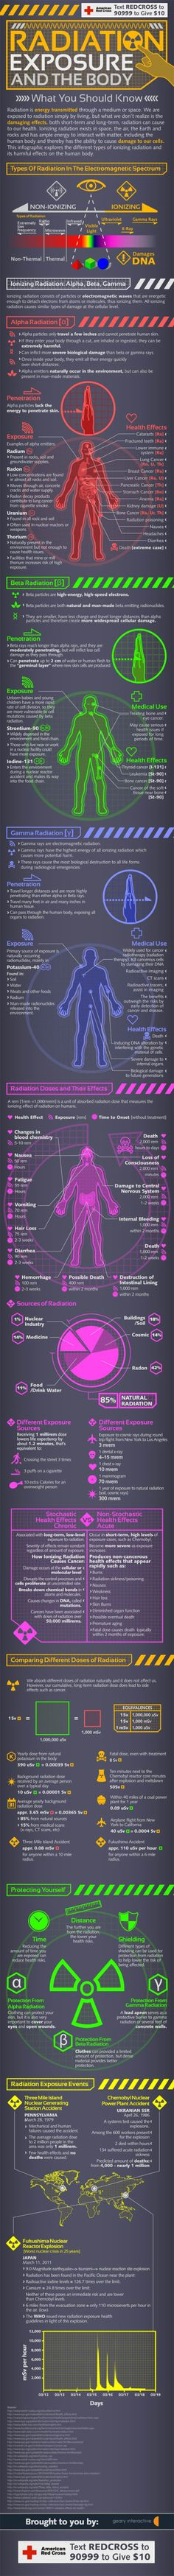 With the tragedy in Japan, there's been a lot of misinformation about radiation out there, so it's great to see this informative infographic by Geary Interactive (thanks TreeHugger for the tip).